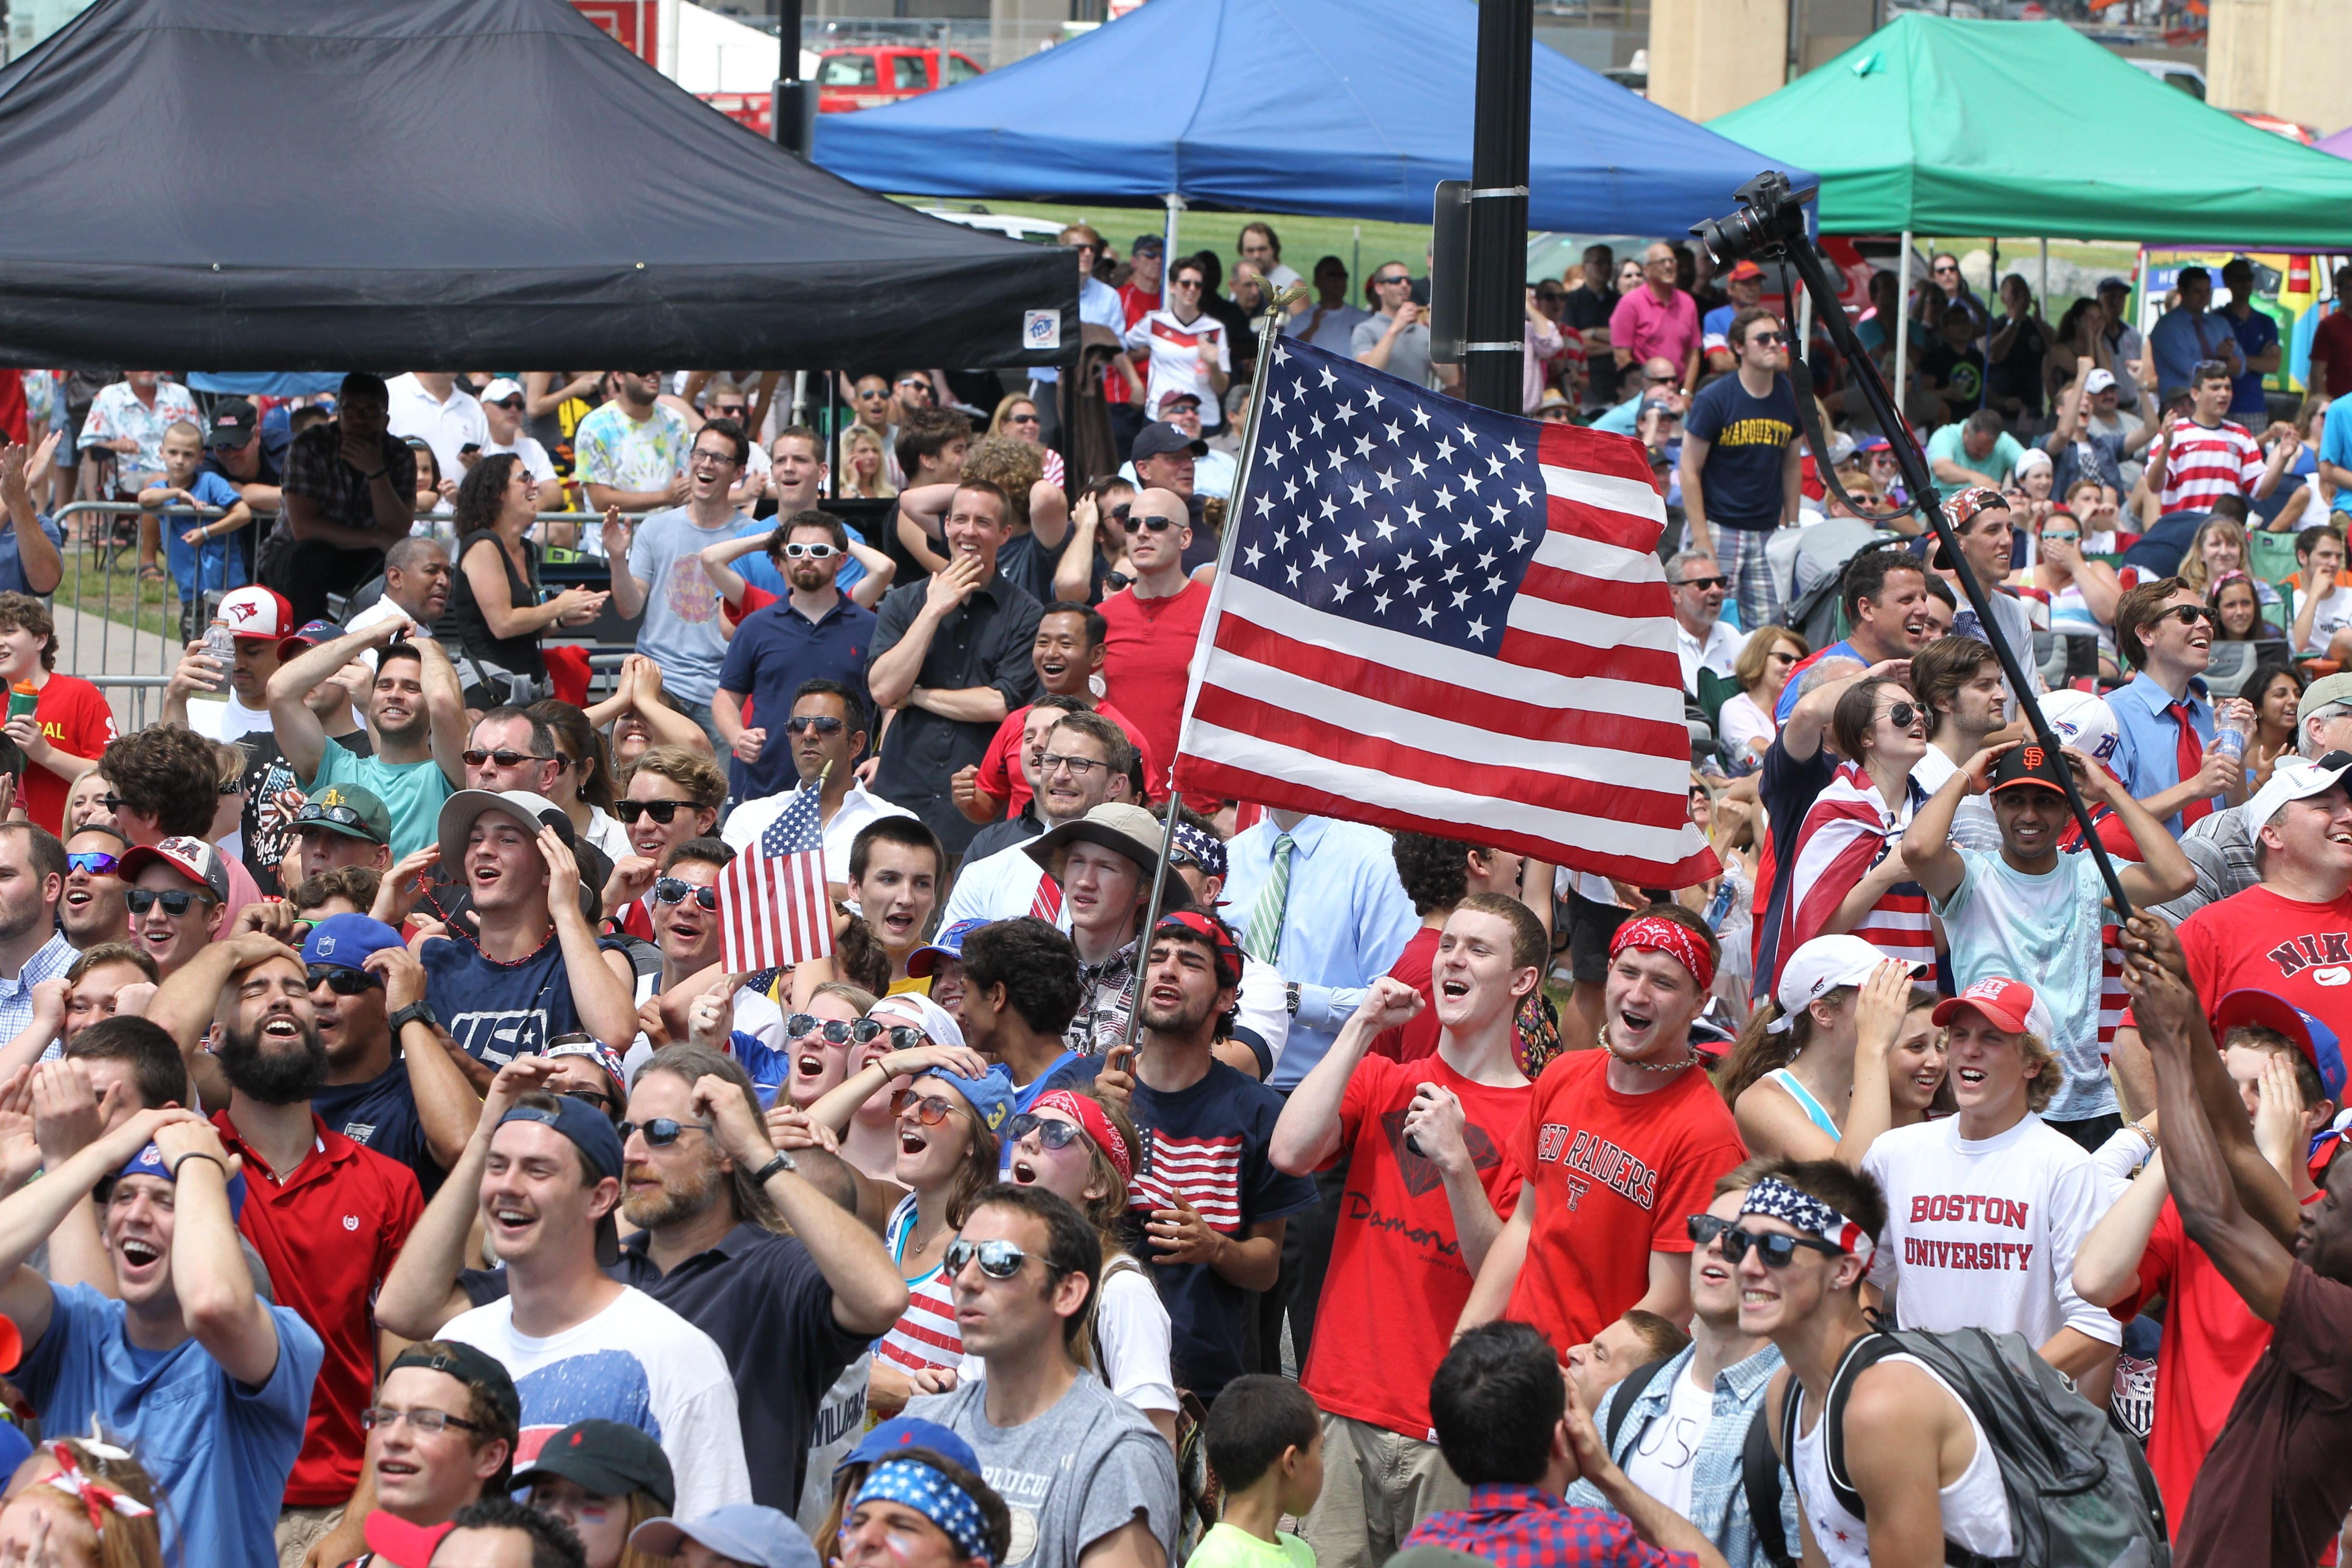 Several thousand fans watch the U.S.-Germany game on a large-screen TV at Canalside in Buffalo on Thursday. Despite losing 1-0, the U.S. team advanced to the Round of 16 with a superior goal difference over Portugal.